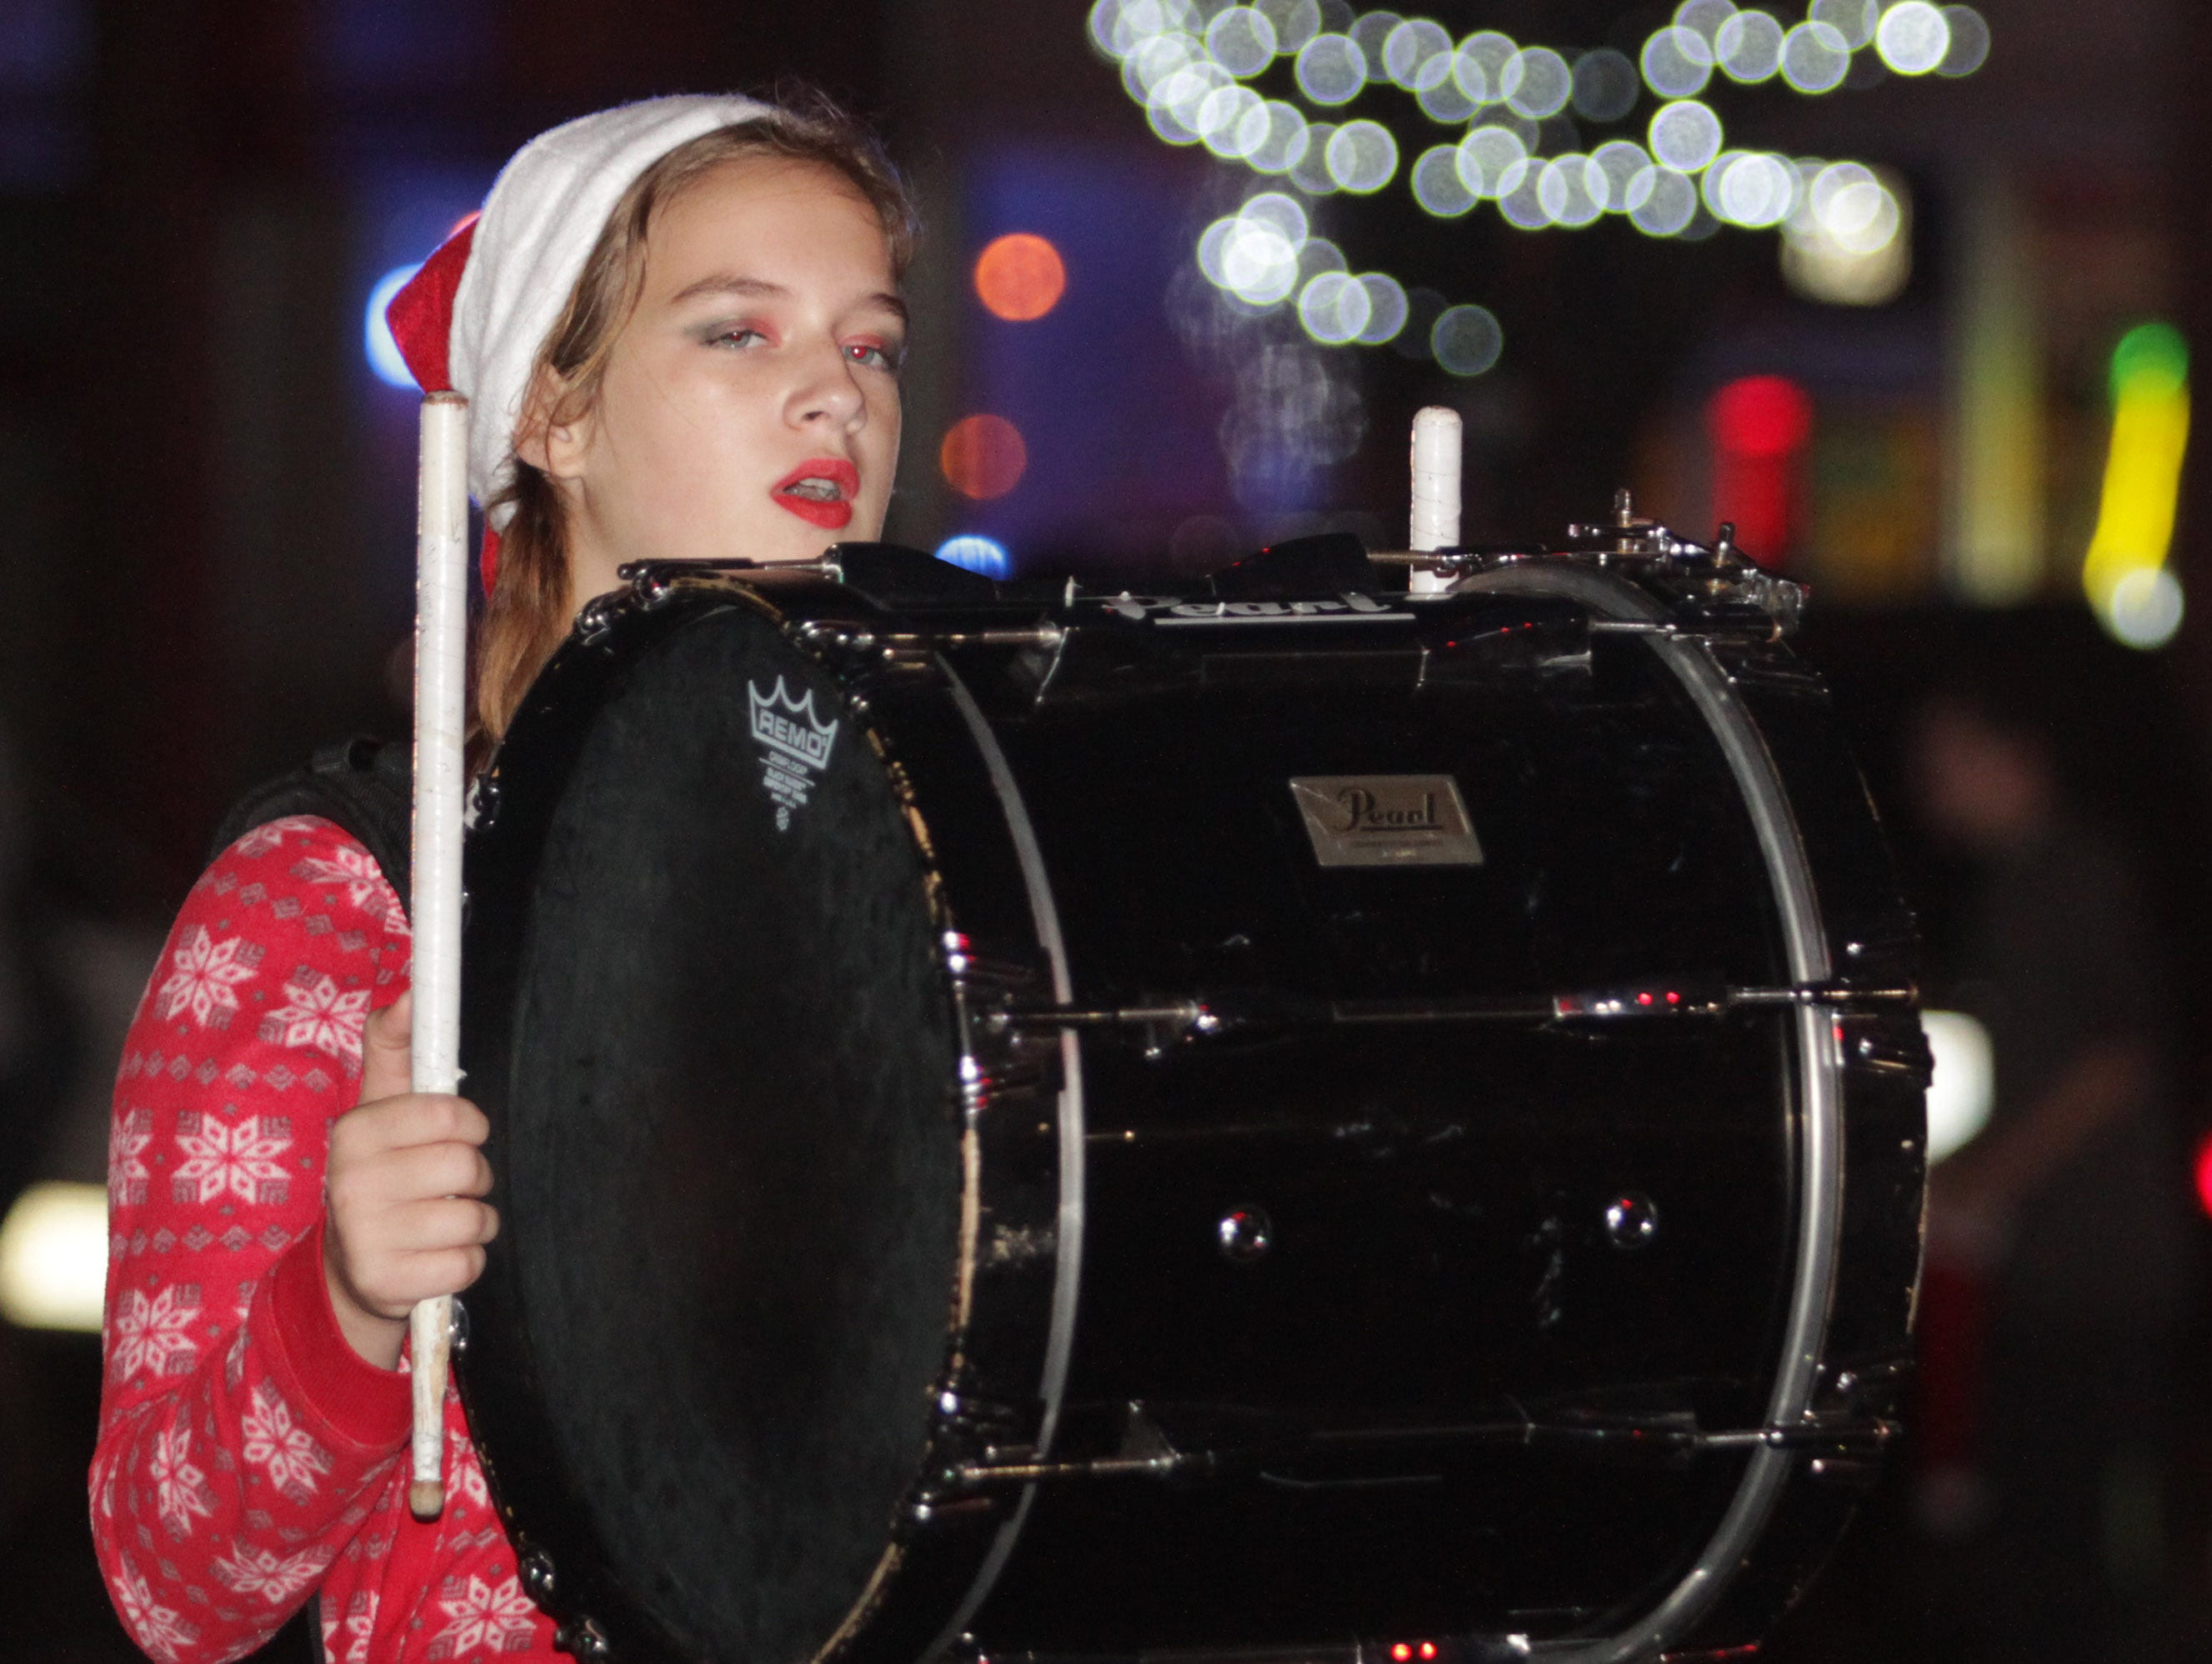 A drummer from the Cheatham County High School band marches in the Ashland City xmas parade on Saturday, December 1, 2018.